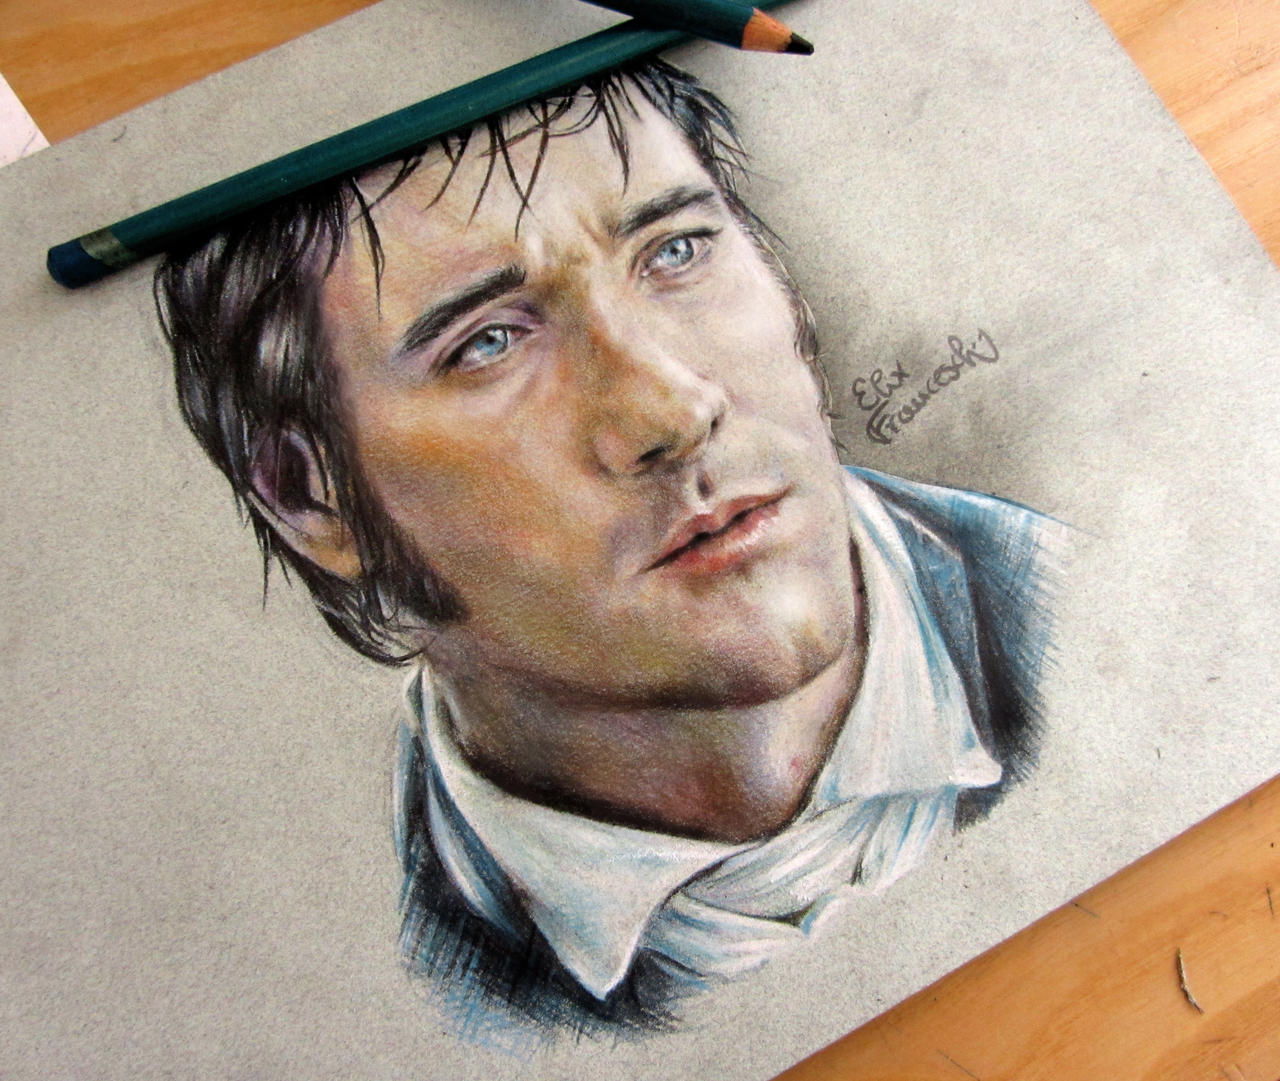 Matthew Macfadyen as Fitzwilliam Darcy by ElixFranceschini